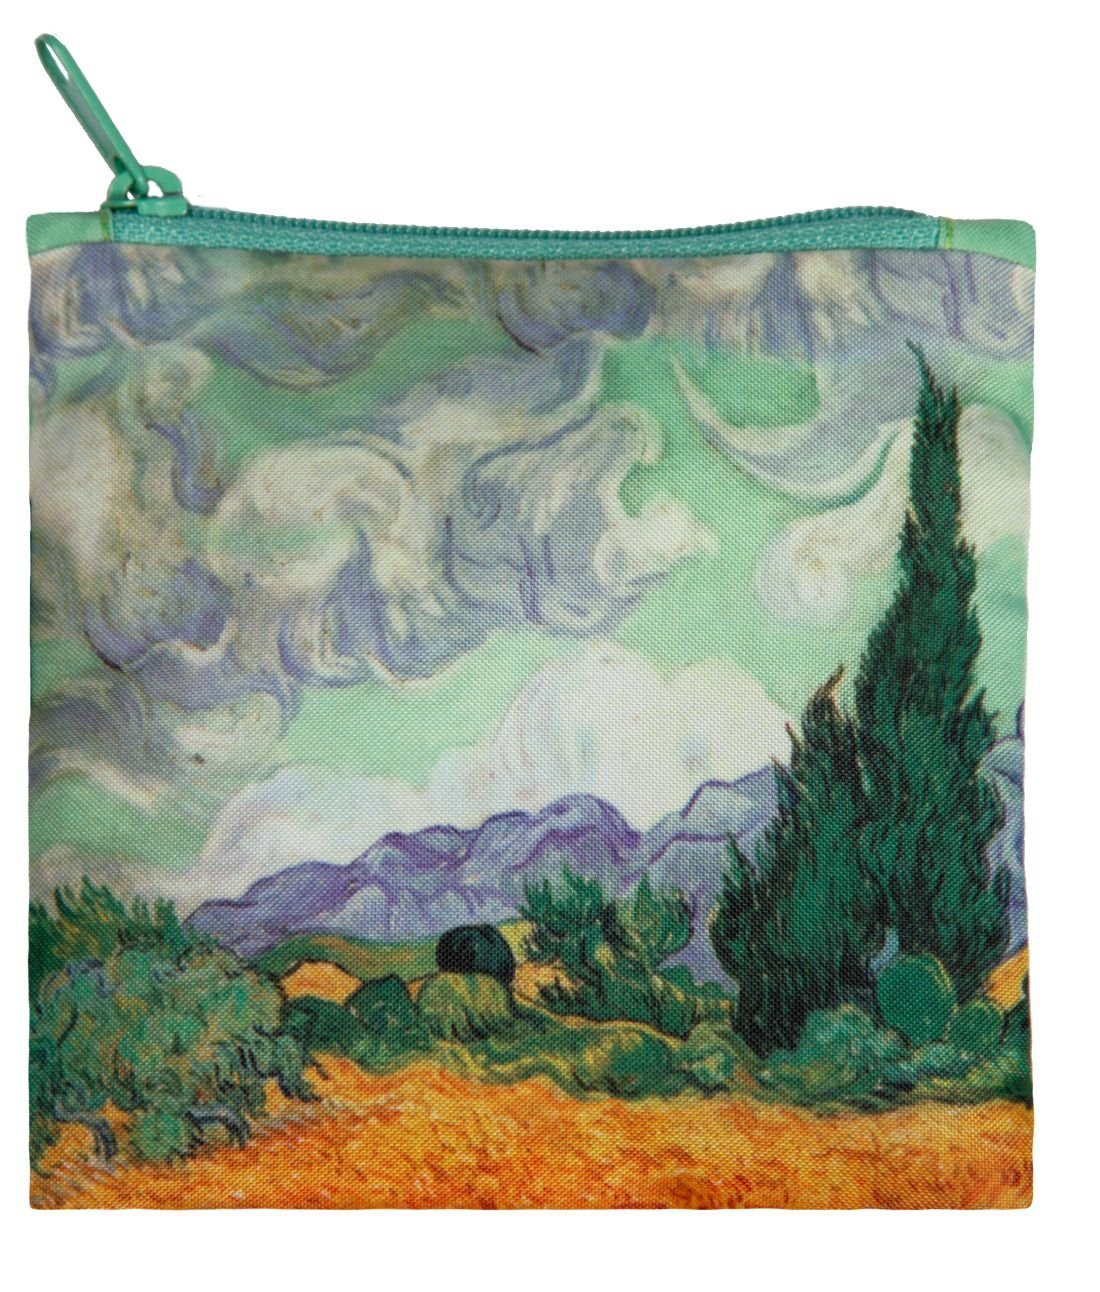 Museum VAN GOGH A Wheat Field with Cypresses Bag Shopper Tasche LOQI sloy4